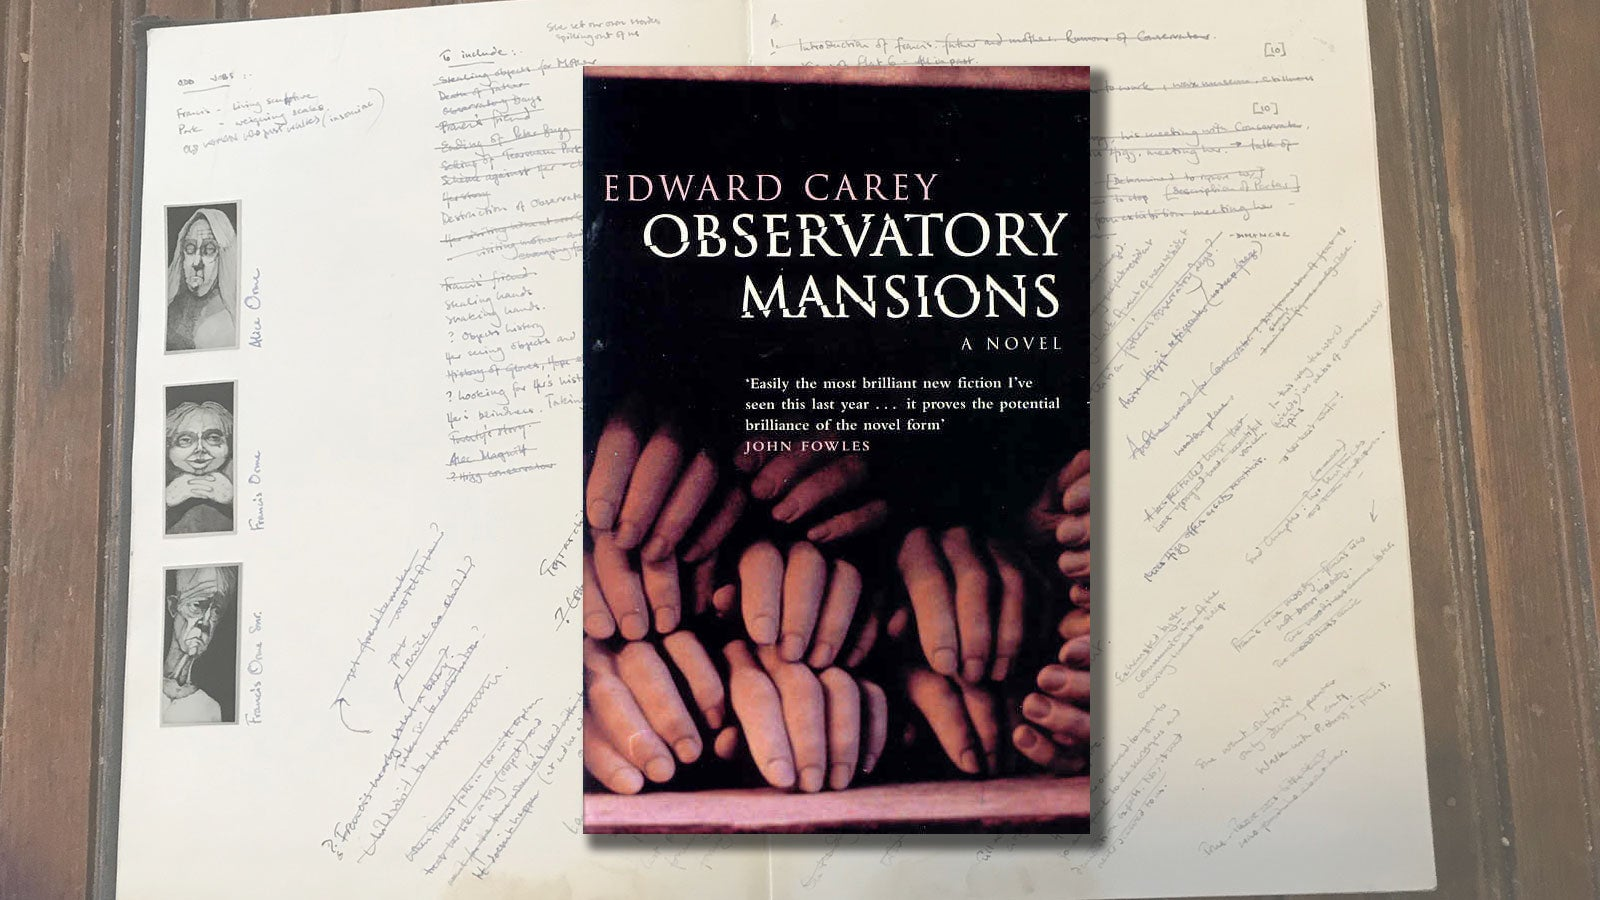 The book cover of Observatory Mansions against a background of Edward Carey's notes on the novel